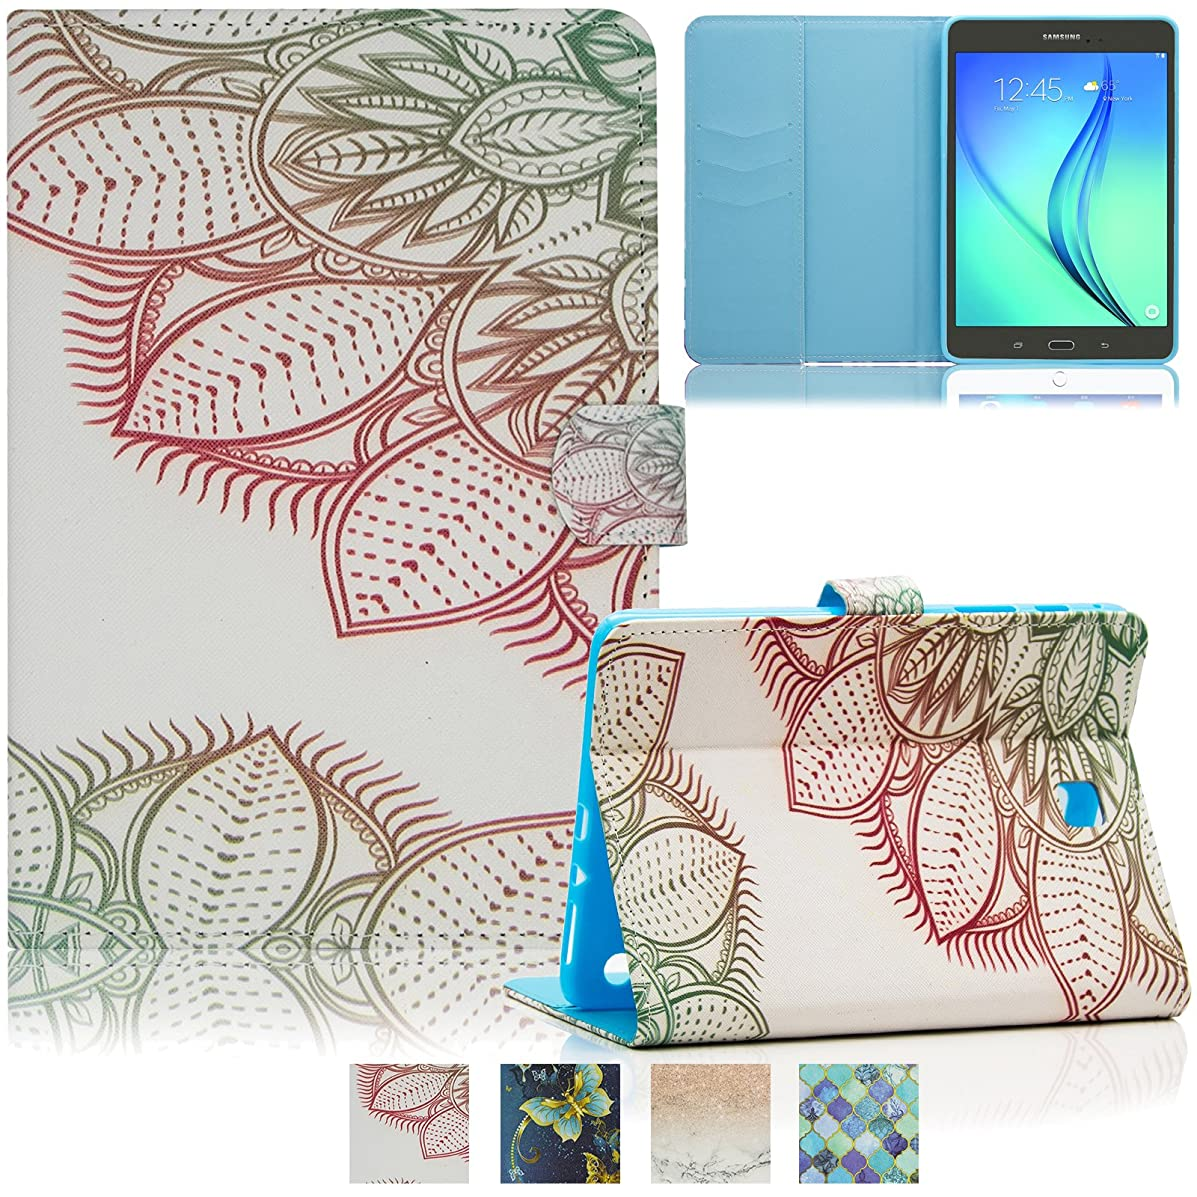 Galaxy Tab A 8.0 Tablet Case 2015 Model (SM-T350/T355), Smart Folio Stand Synthetic Leather Wallet TPU Cover with Pocket Card Holder [Auto Wake/Sleep] for Samsung Tab A 8.0 2015, Ink Painting Flower